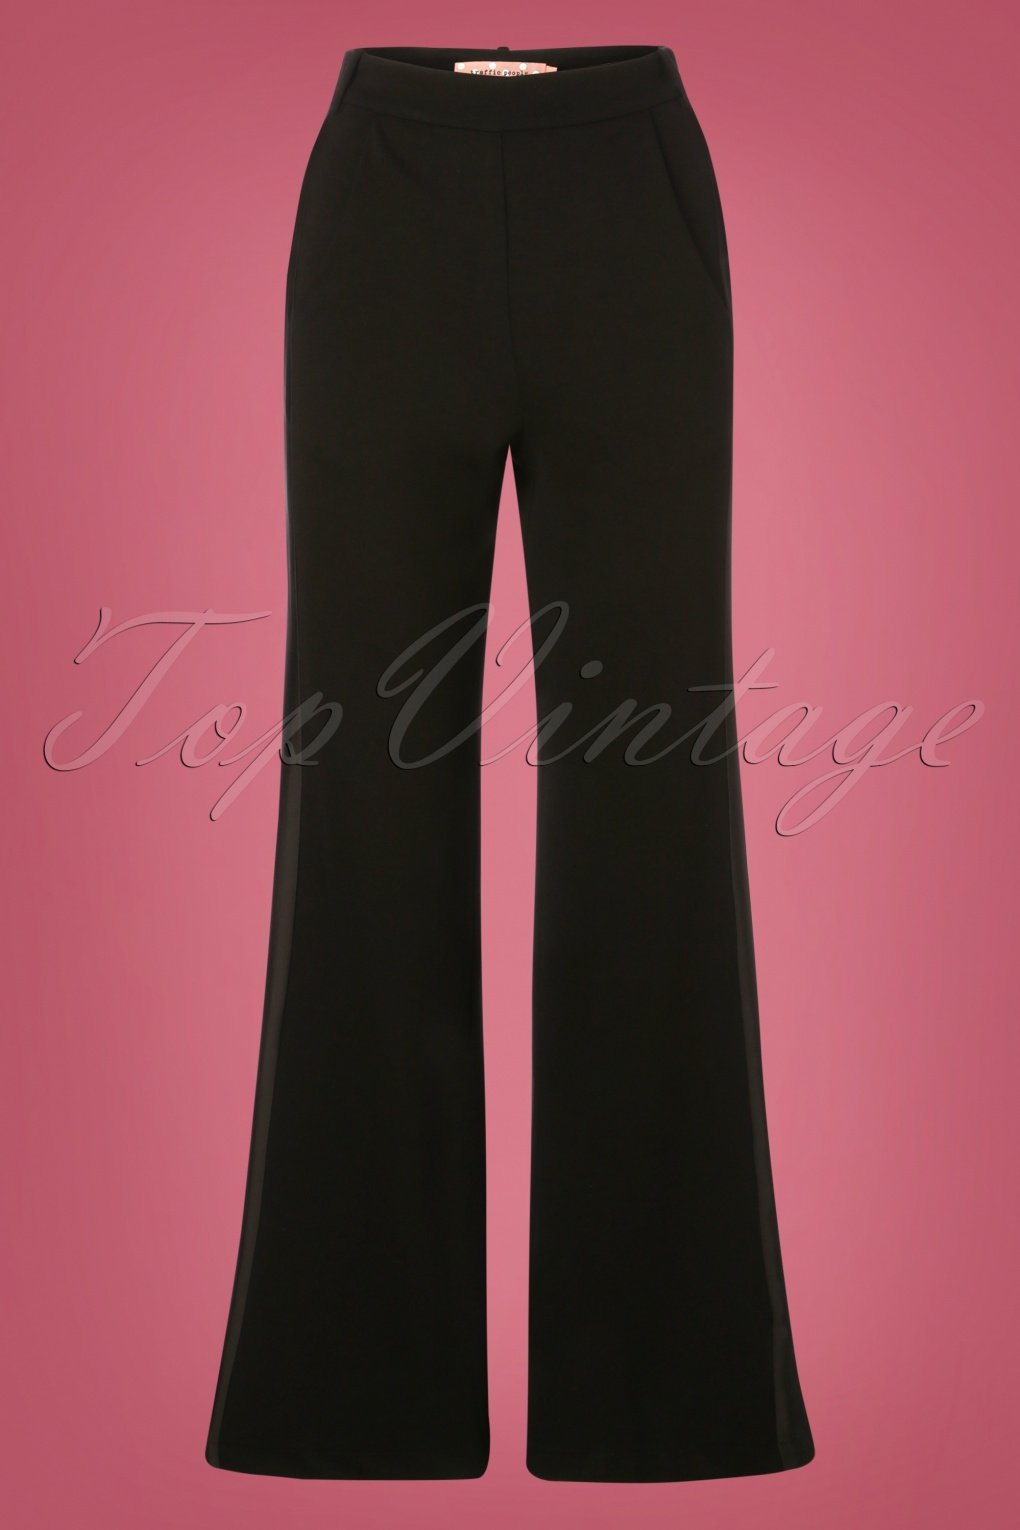 60s – 70s Pants, Jeans, Hippie, Bell Bottoms, Jumpsuits 60s The Getaway Edge Flare Trousers in Black £96.40 AT vintagedancer.com